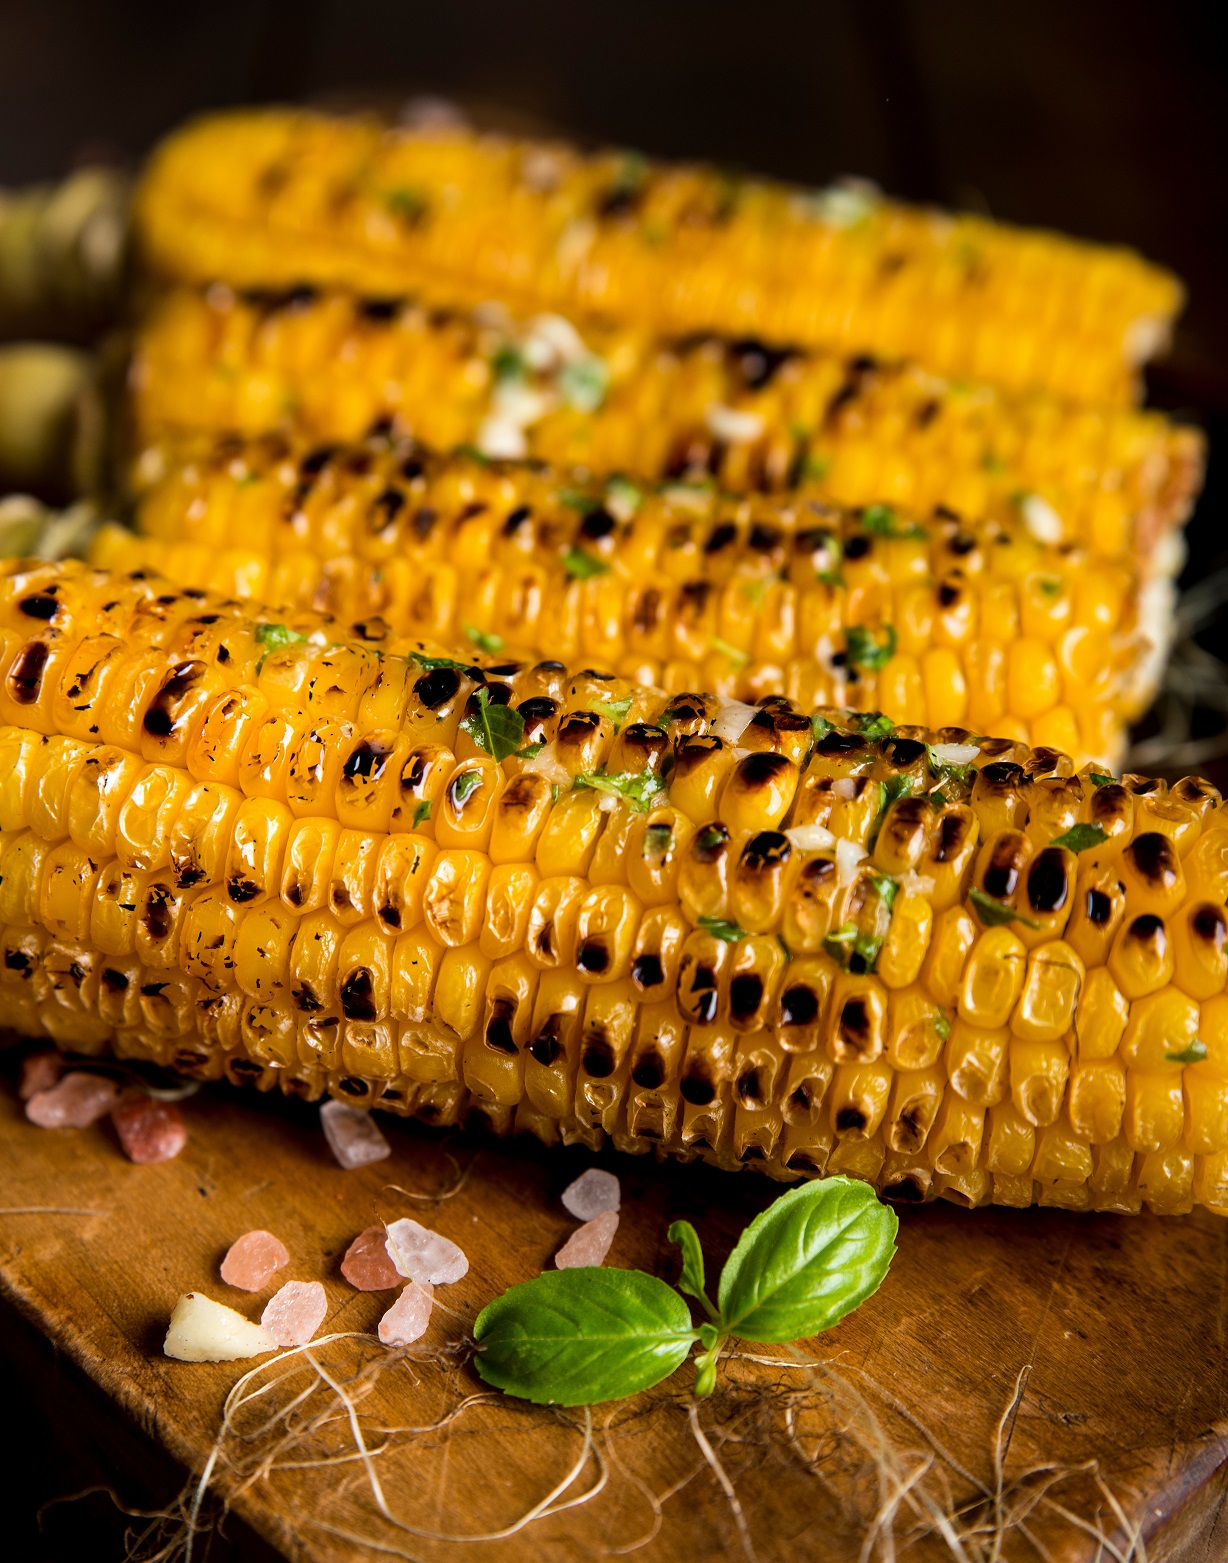 Top 4 Ways to Grill Vegetables